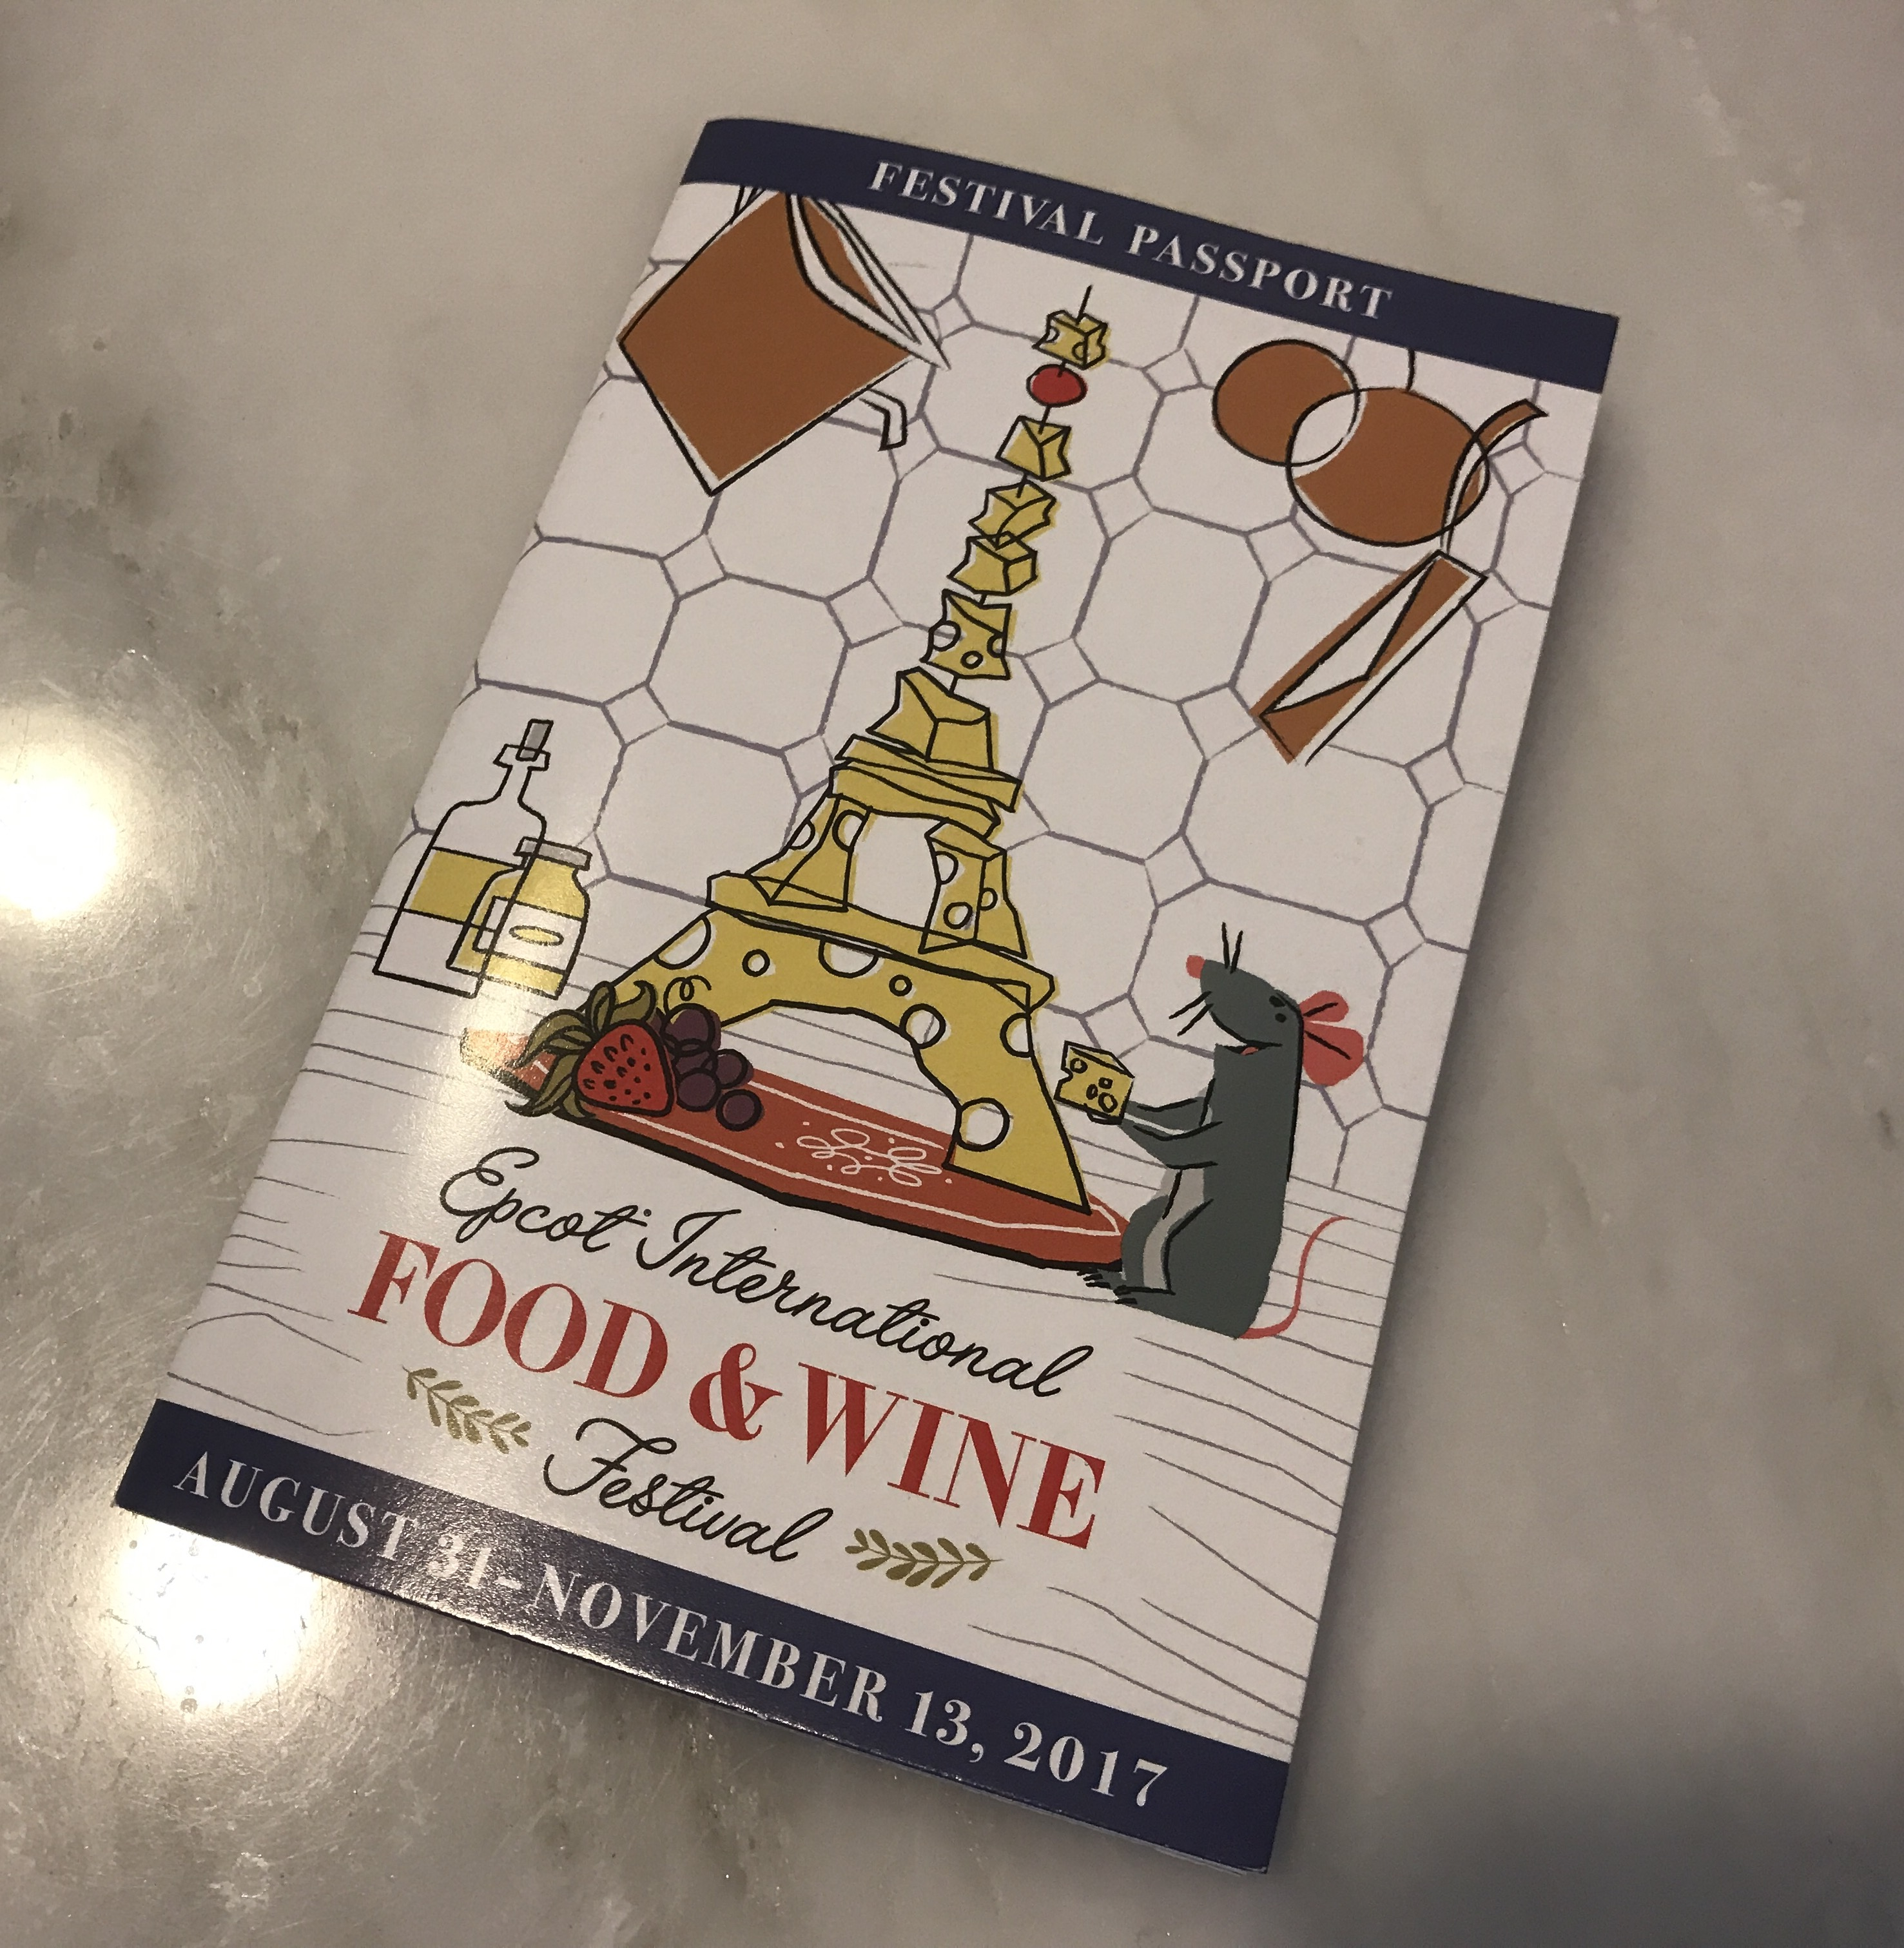 Epcot Food and Wine Festival passport